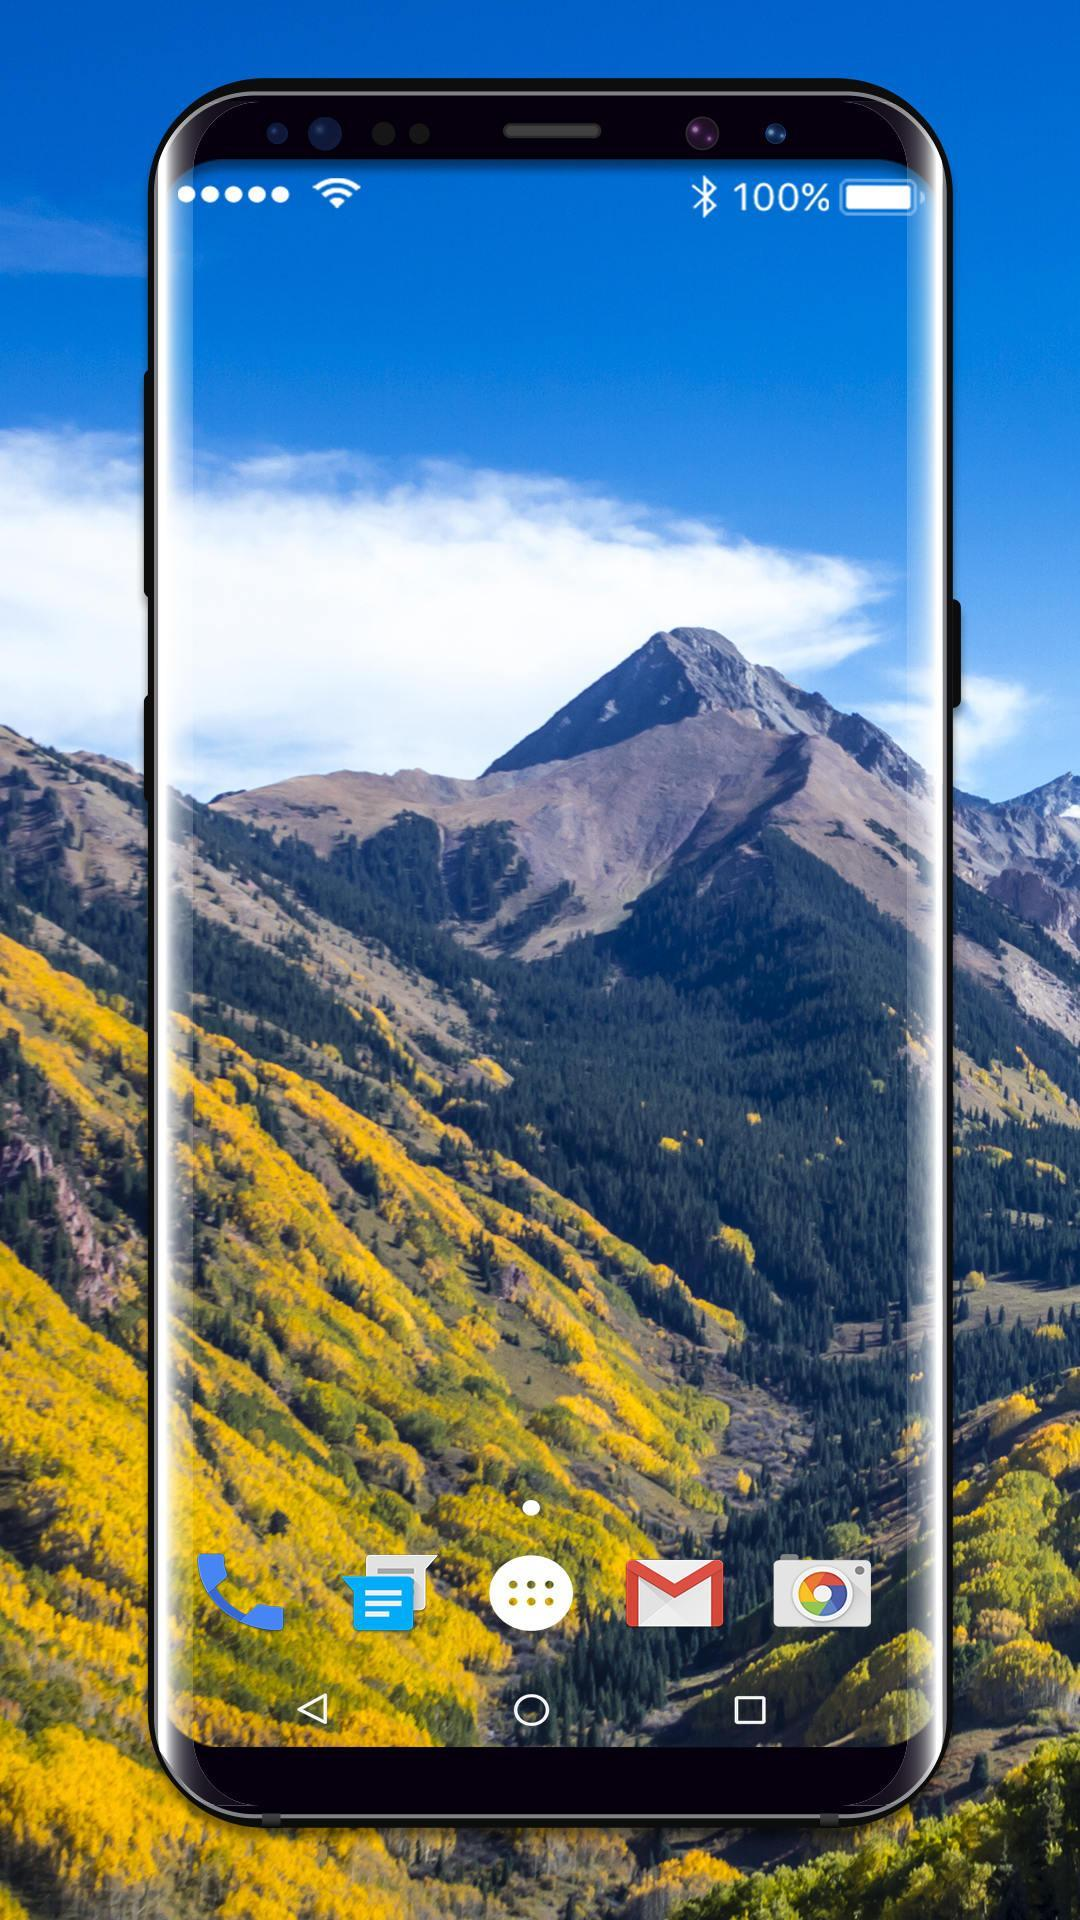 Hd Nature Mountain Live Wallpaper Background For Android Apk